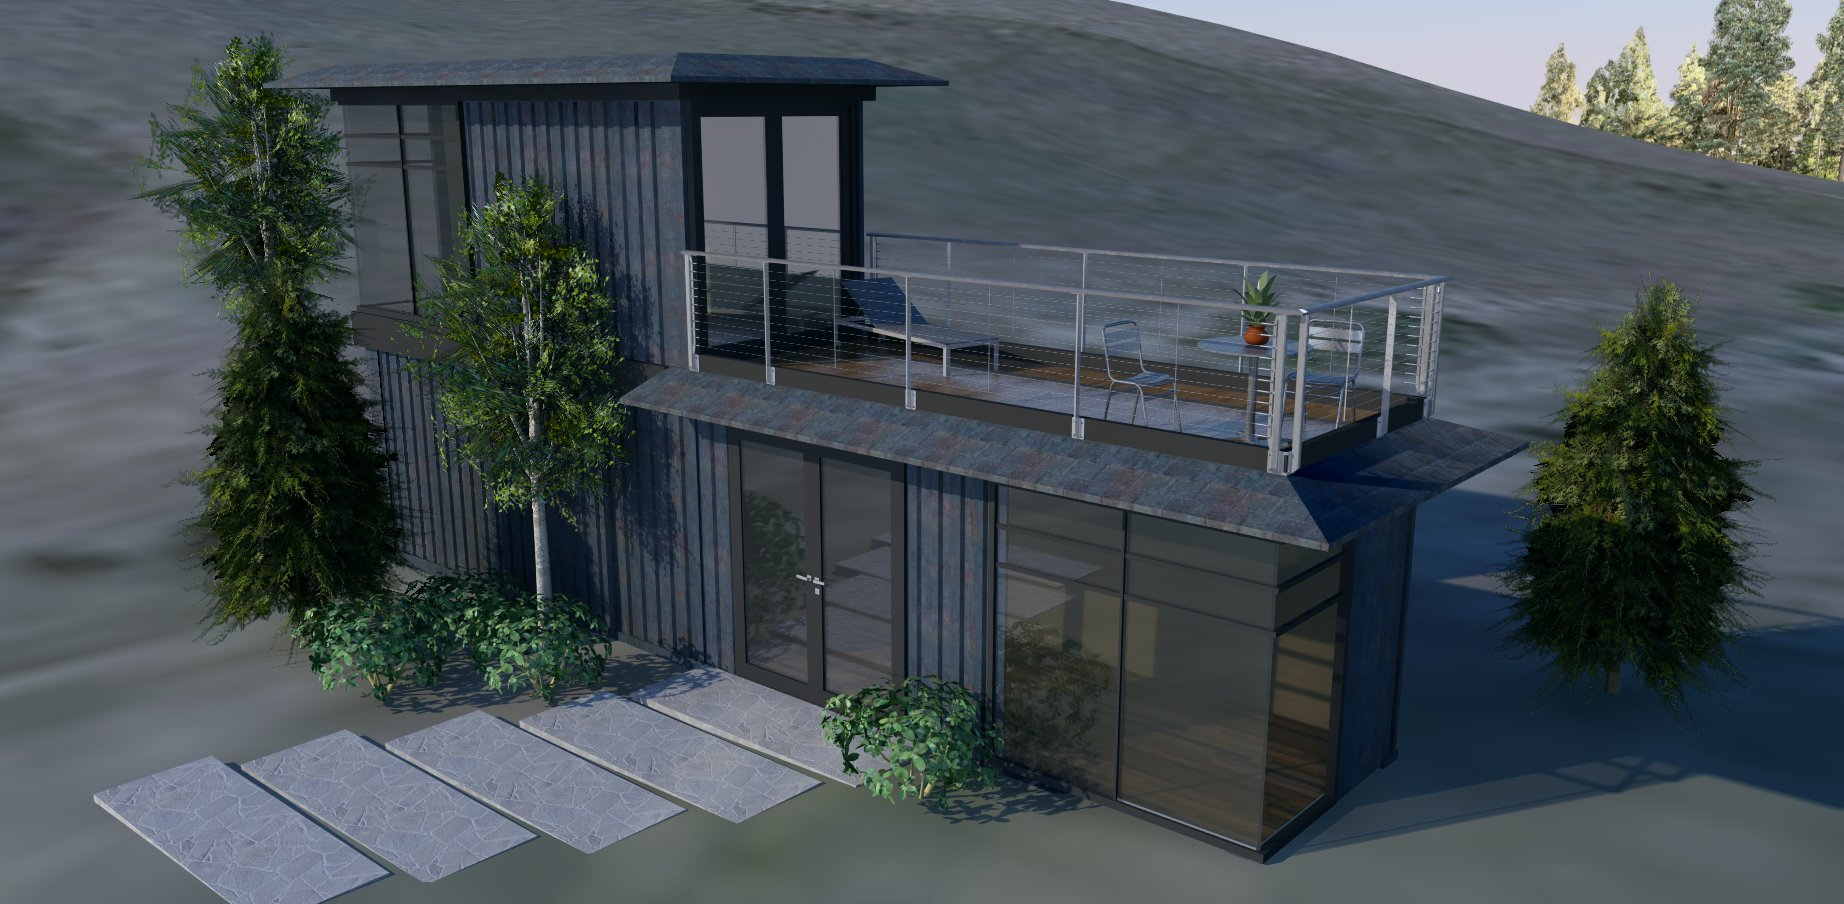 MODS Two Story Shipping Container Home